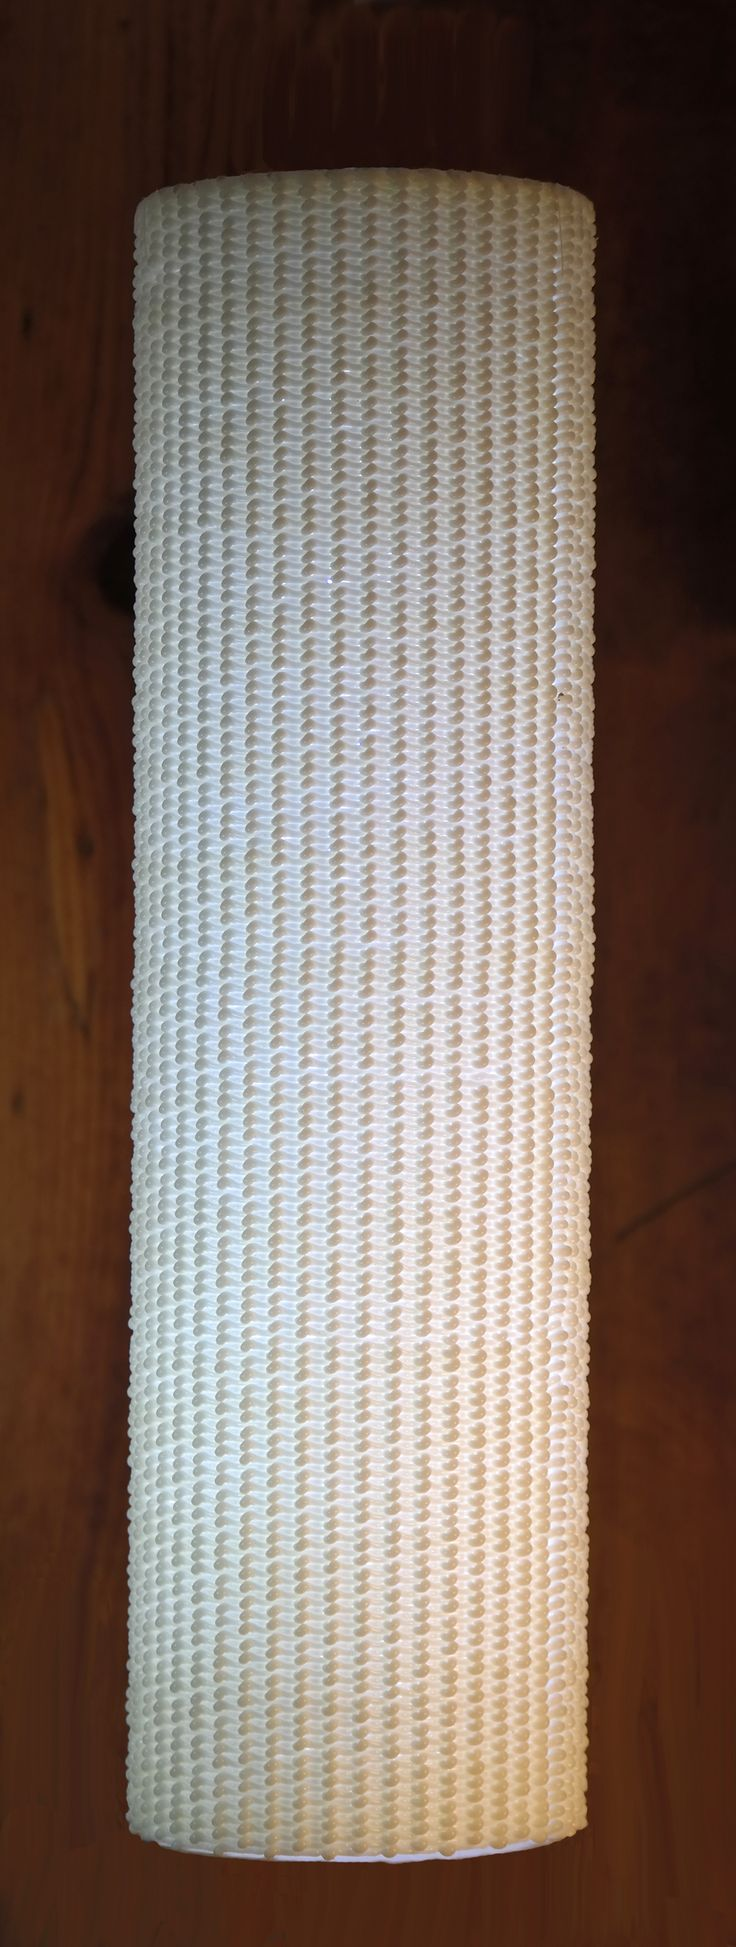 Willow Straight 3D Printed Pedestal Light Fitting